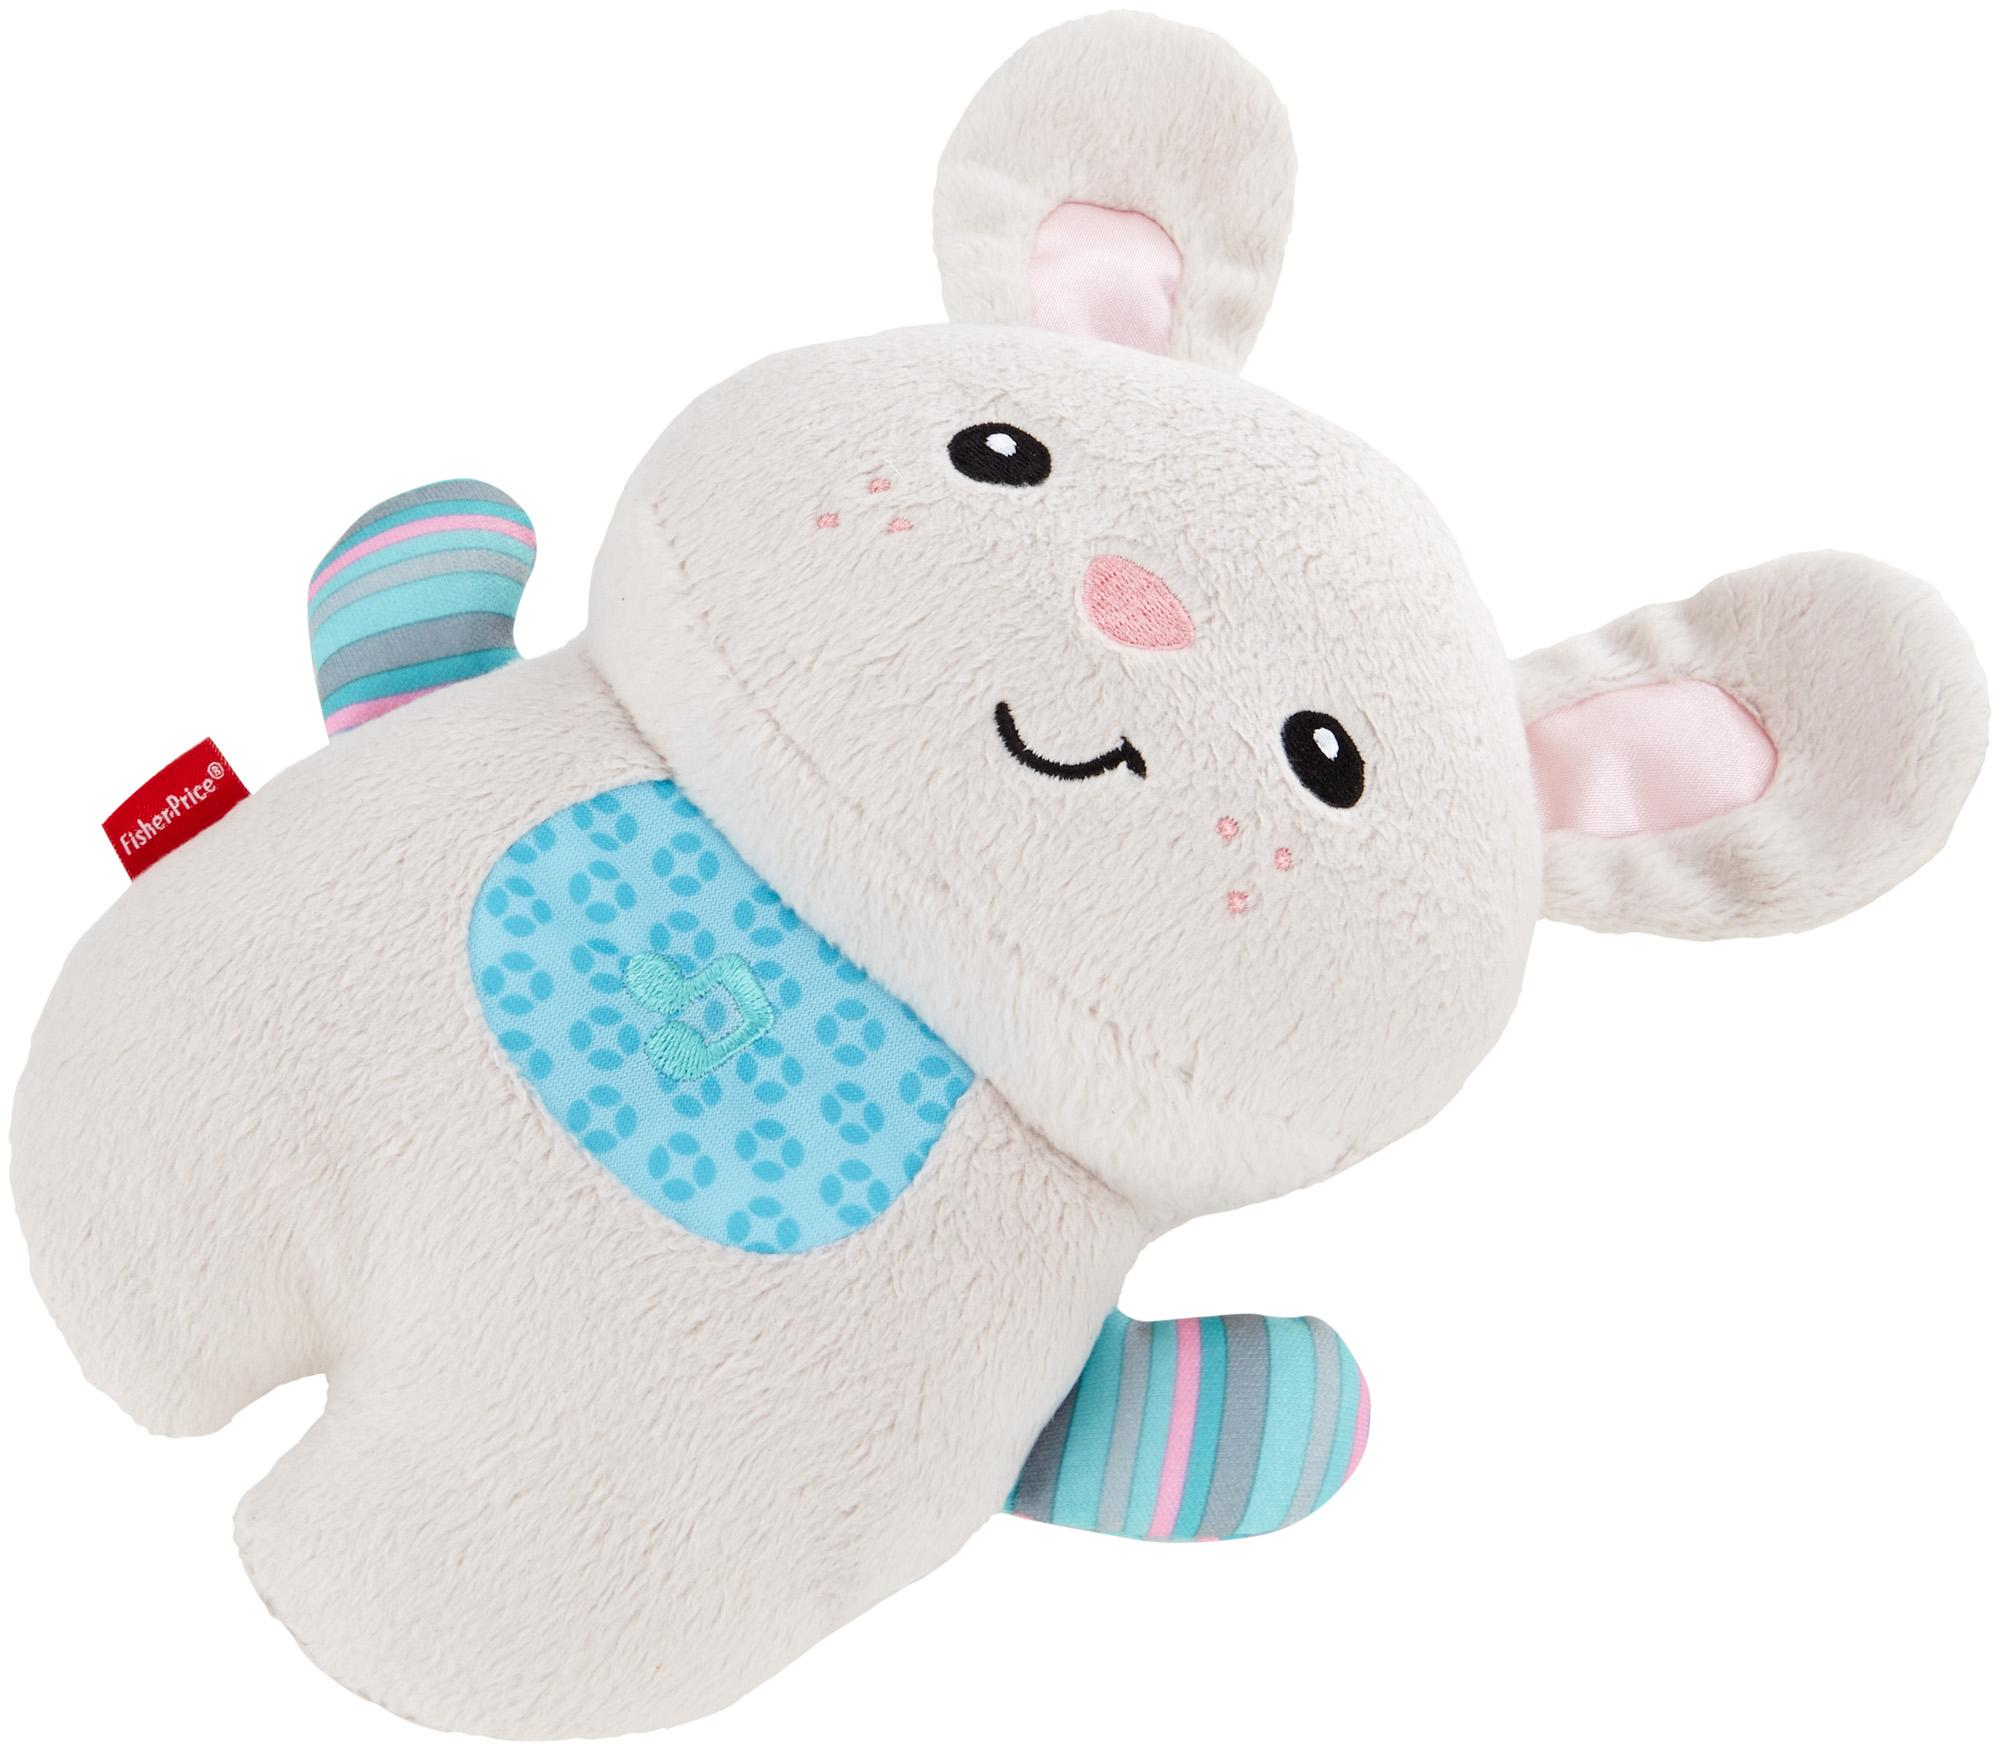 Glow Toys For Bedtime Amazon Fisher Price Soothe And Glow Bunny Toys And Games